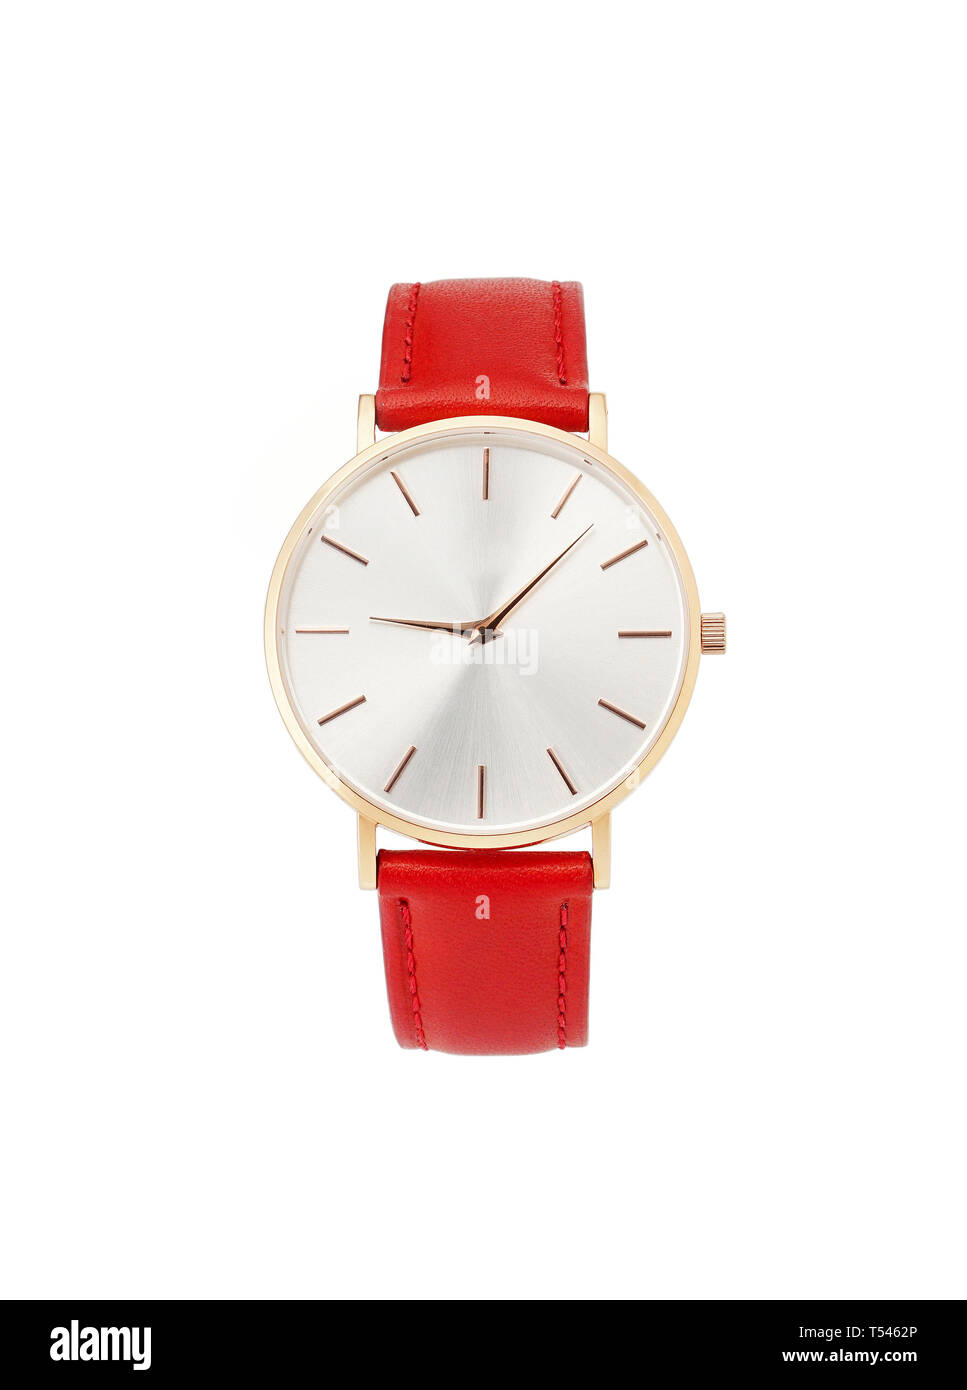 Classic women's gold watch with white dial, red leather strap, isolate on a white background. Front view. - Stock Image